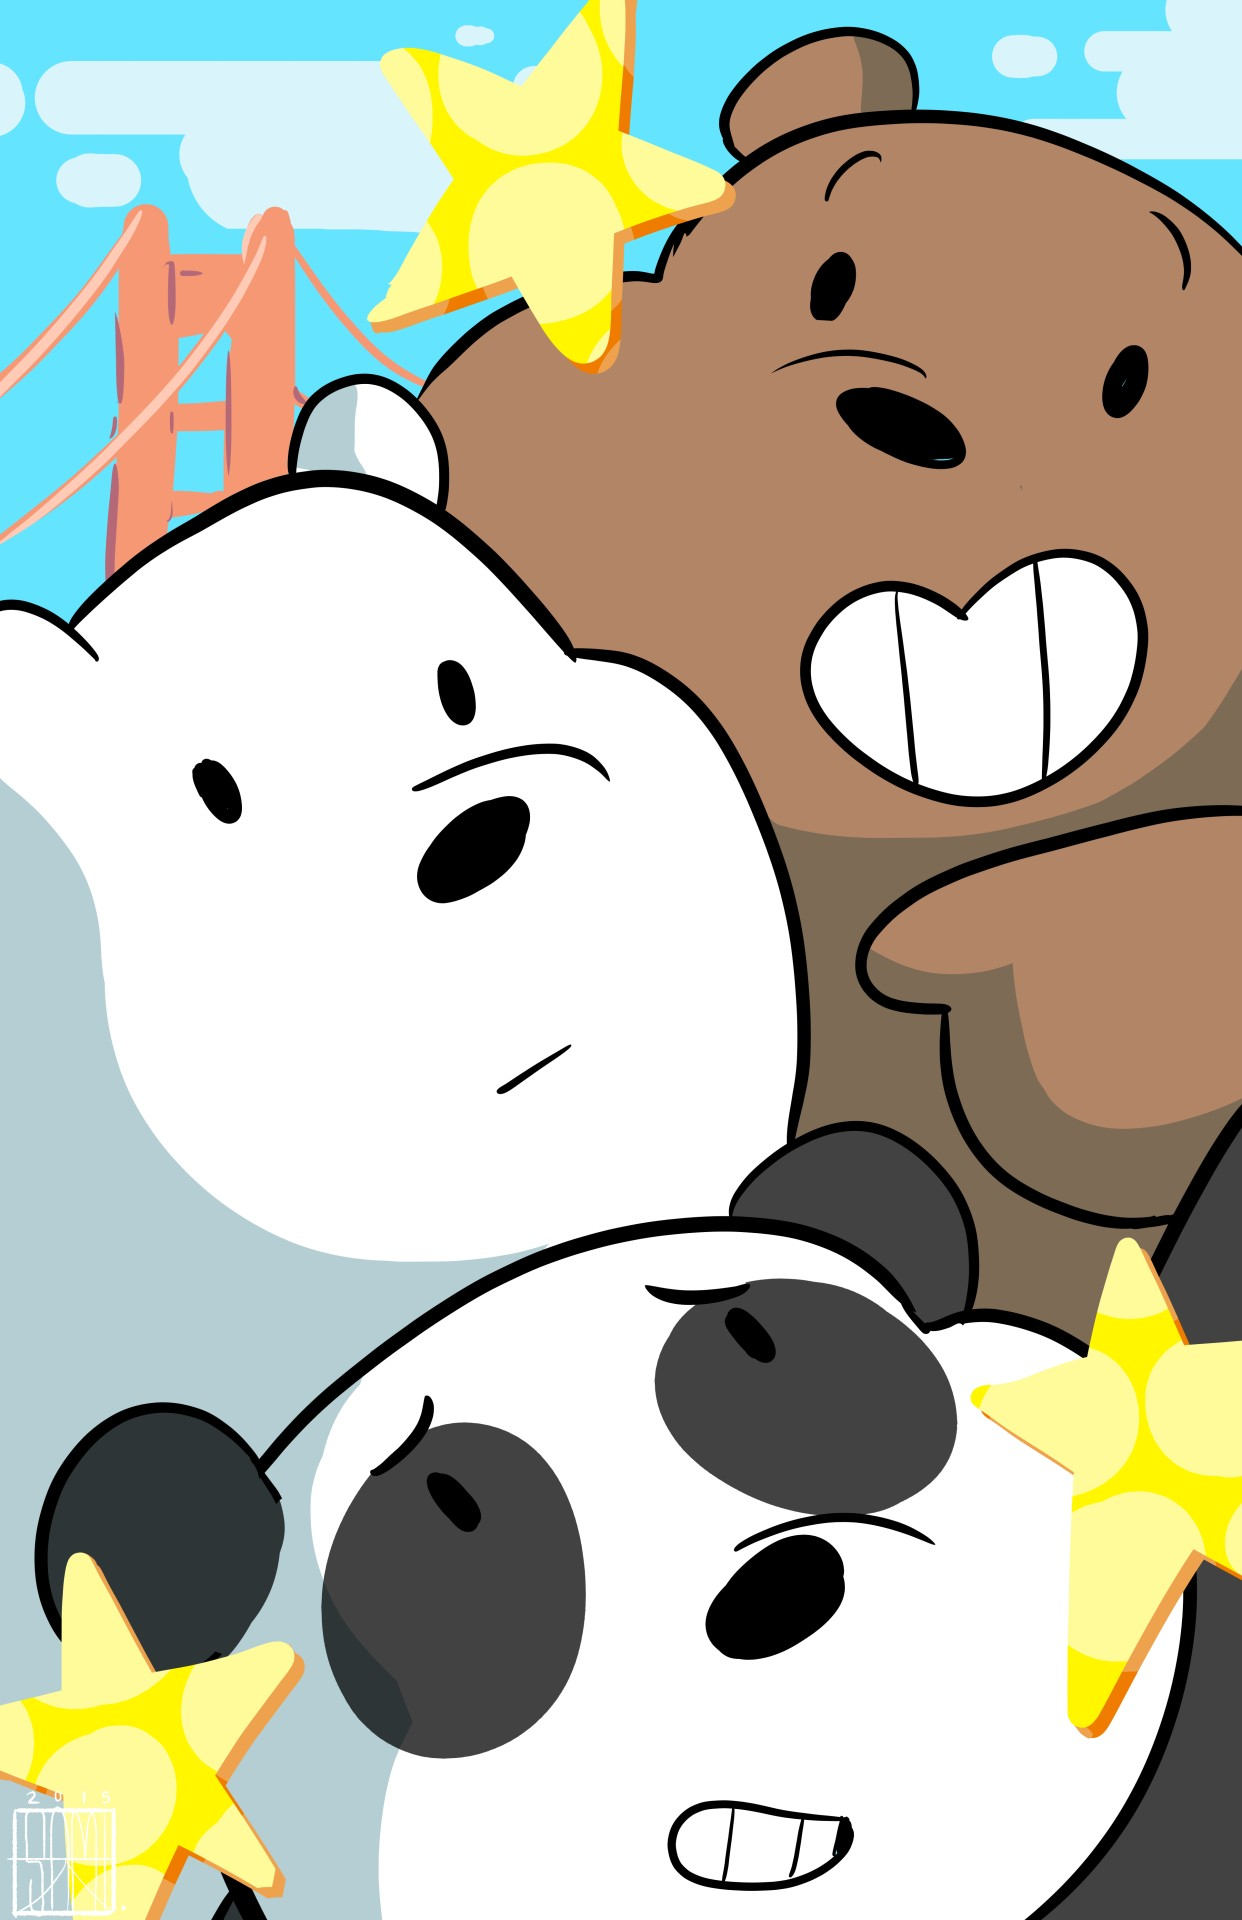 we bare bears wallpaper download free cool wallpapers for